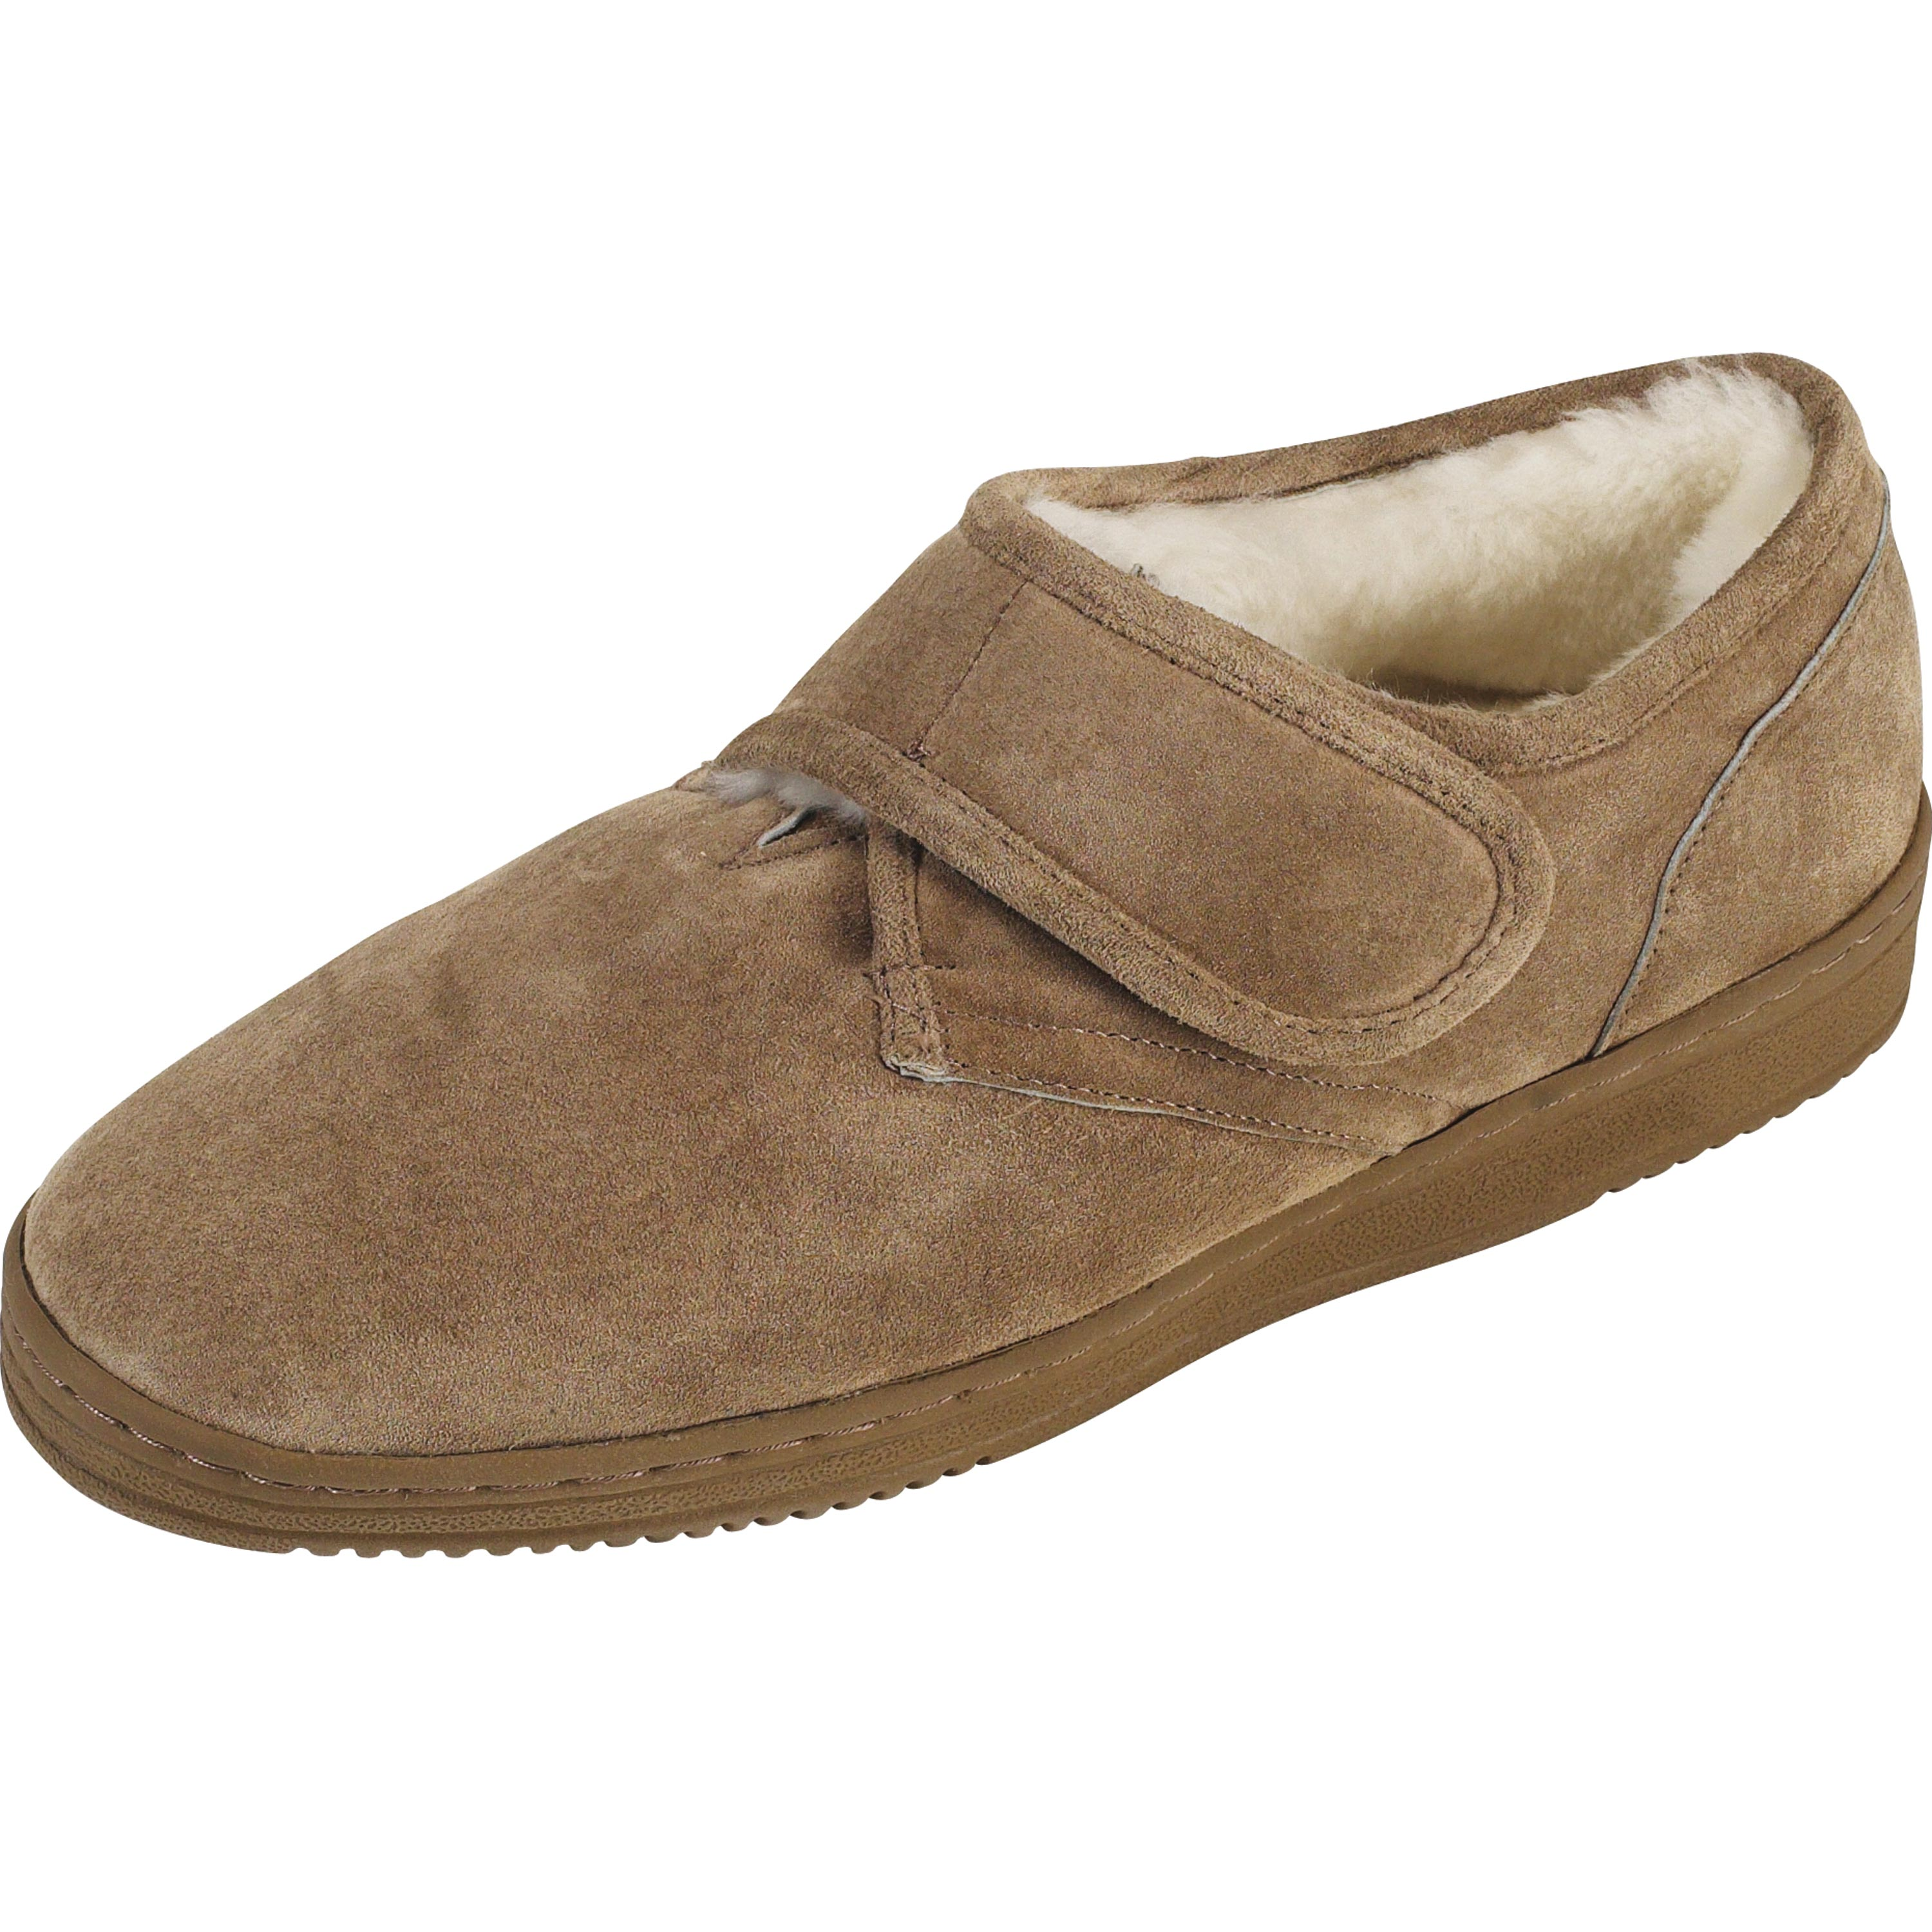 Old Friend MEN'S ADJUSTABLE HOUSE SHOE at Sears.com